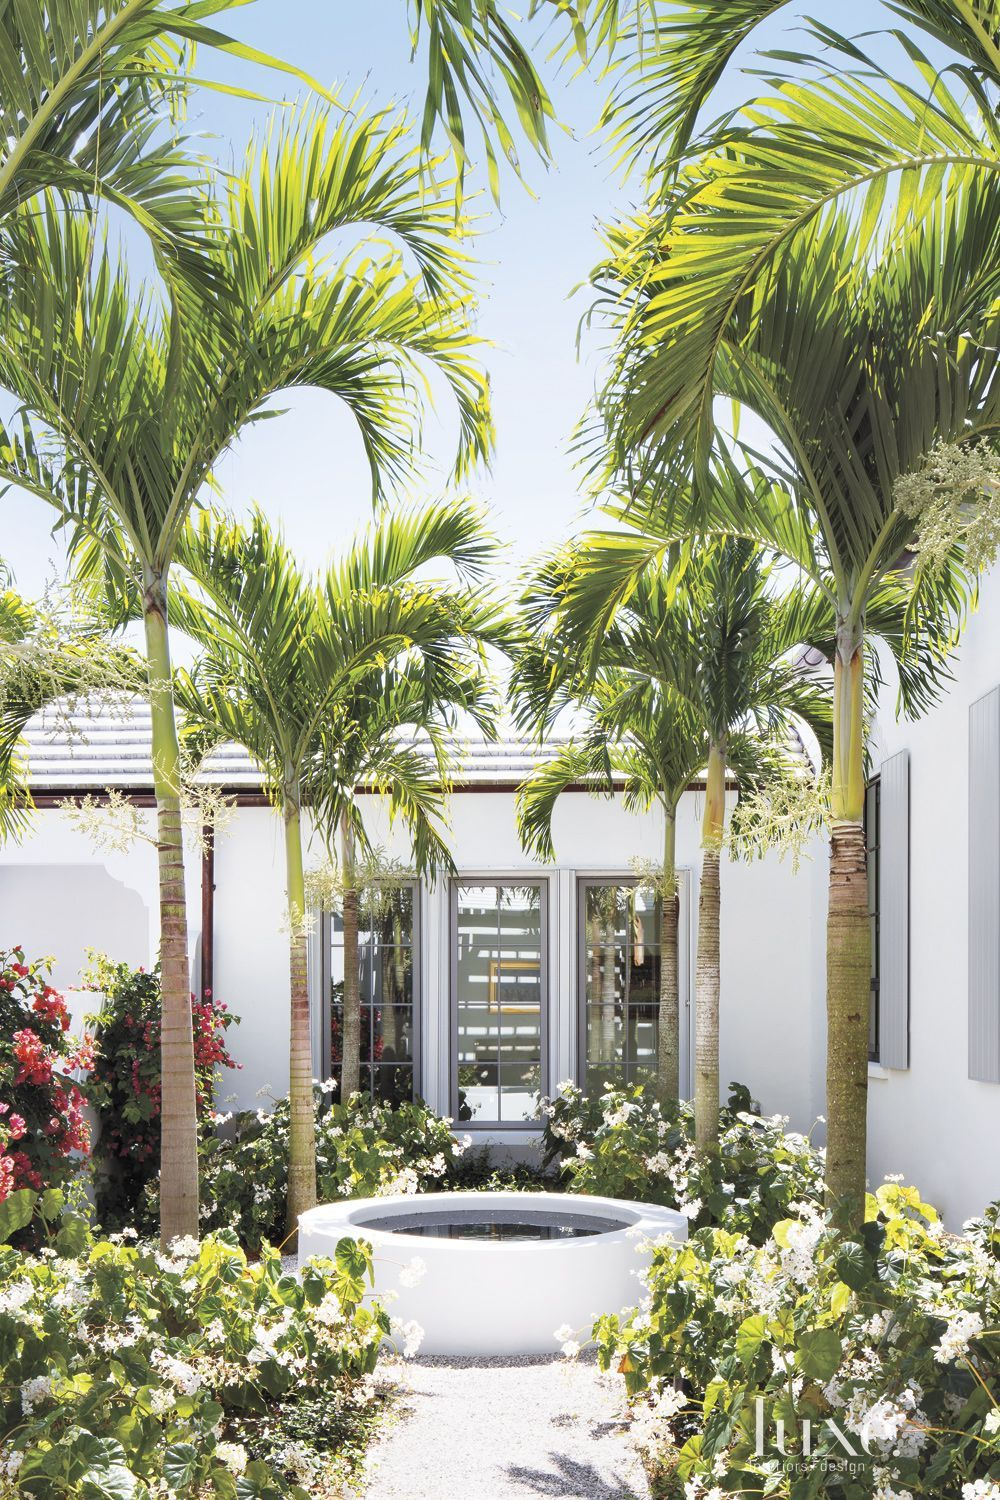 Modern White Courtyard with Tall Palm Trees | LuxeSource | Luxe ...